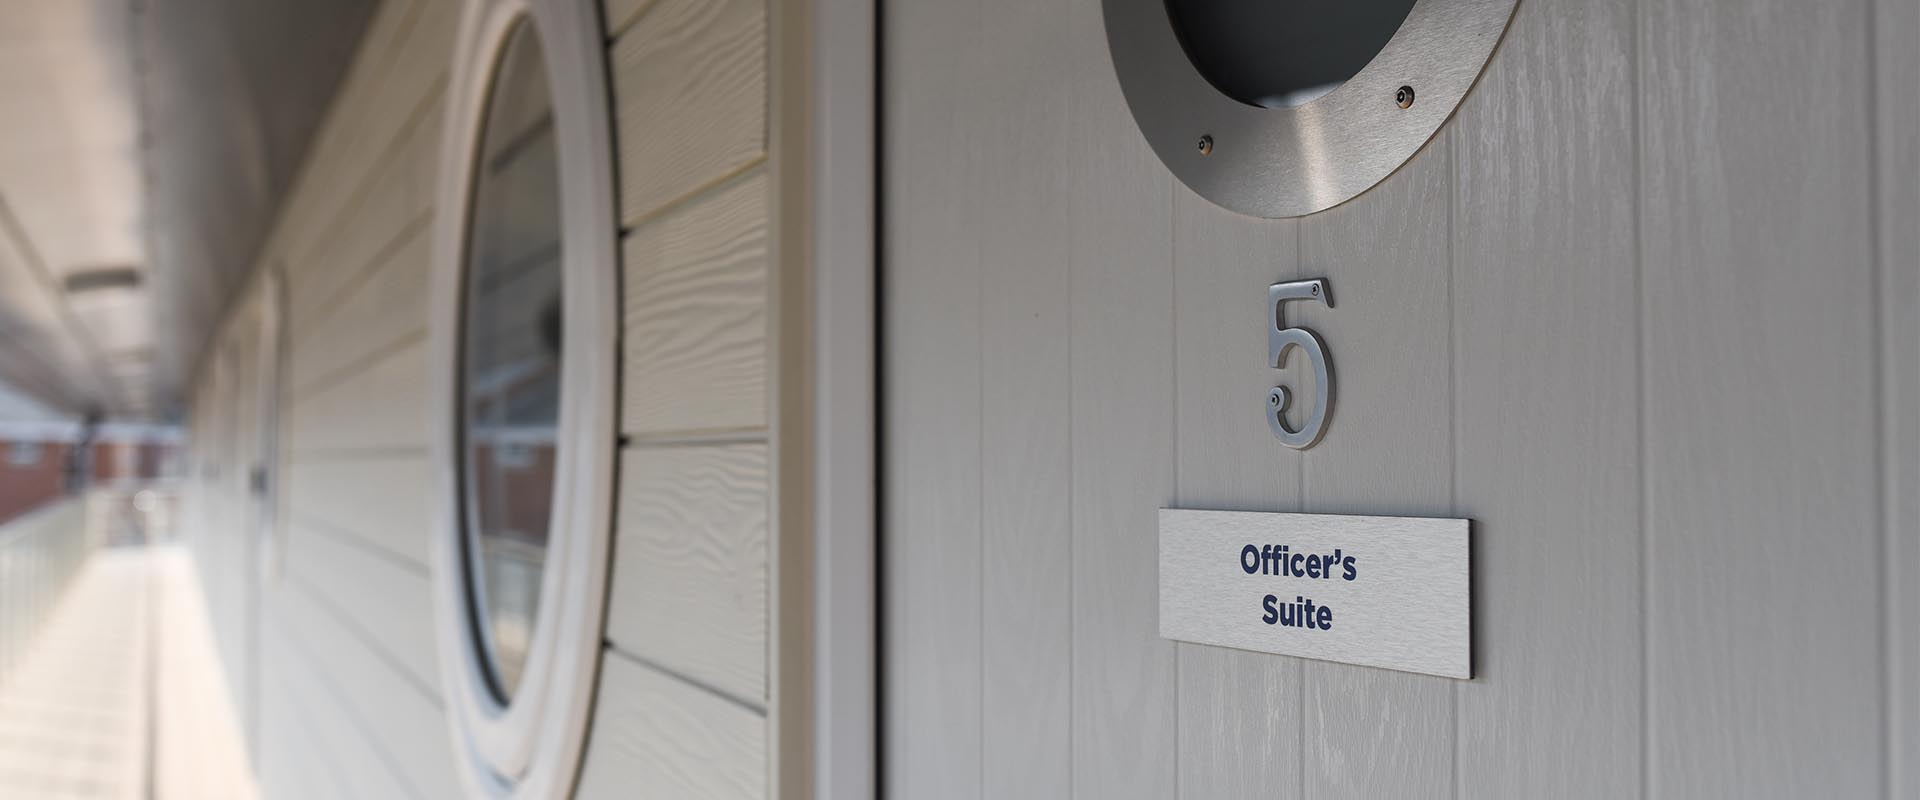 5 – Officer's Suite